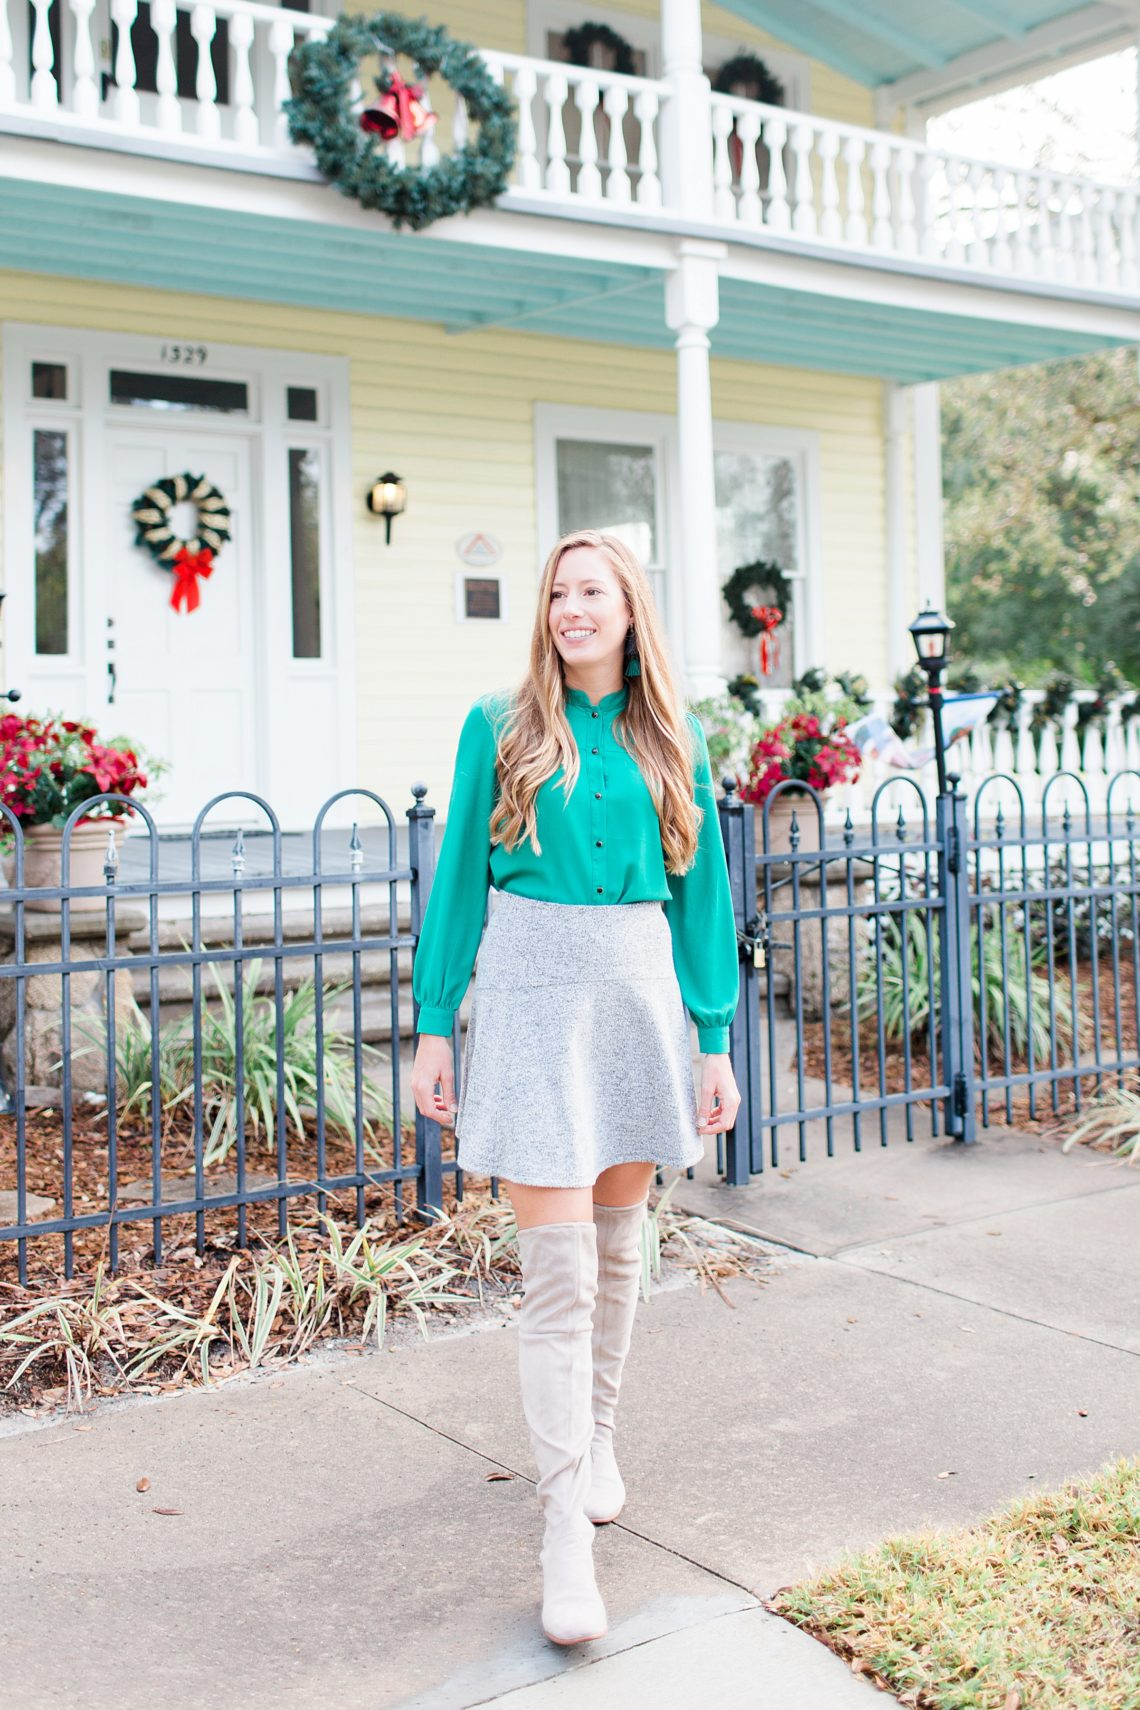 Festive Christmas Party Outfit // What to Wear for a Christmas Party // Christmas Day Outfit // Green Blouse // Grey Over the Knee Boots // LOFT Swing Skirt - More on www.sunshinestyleblog.com